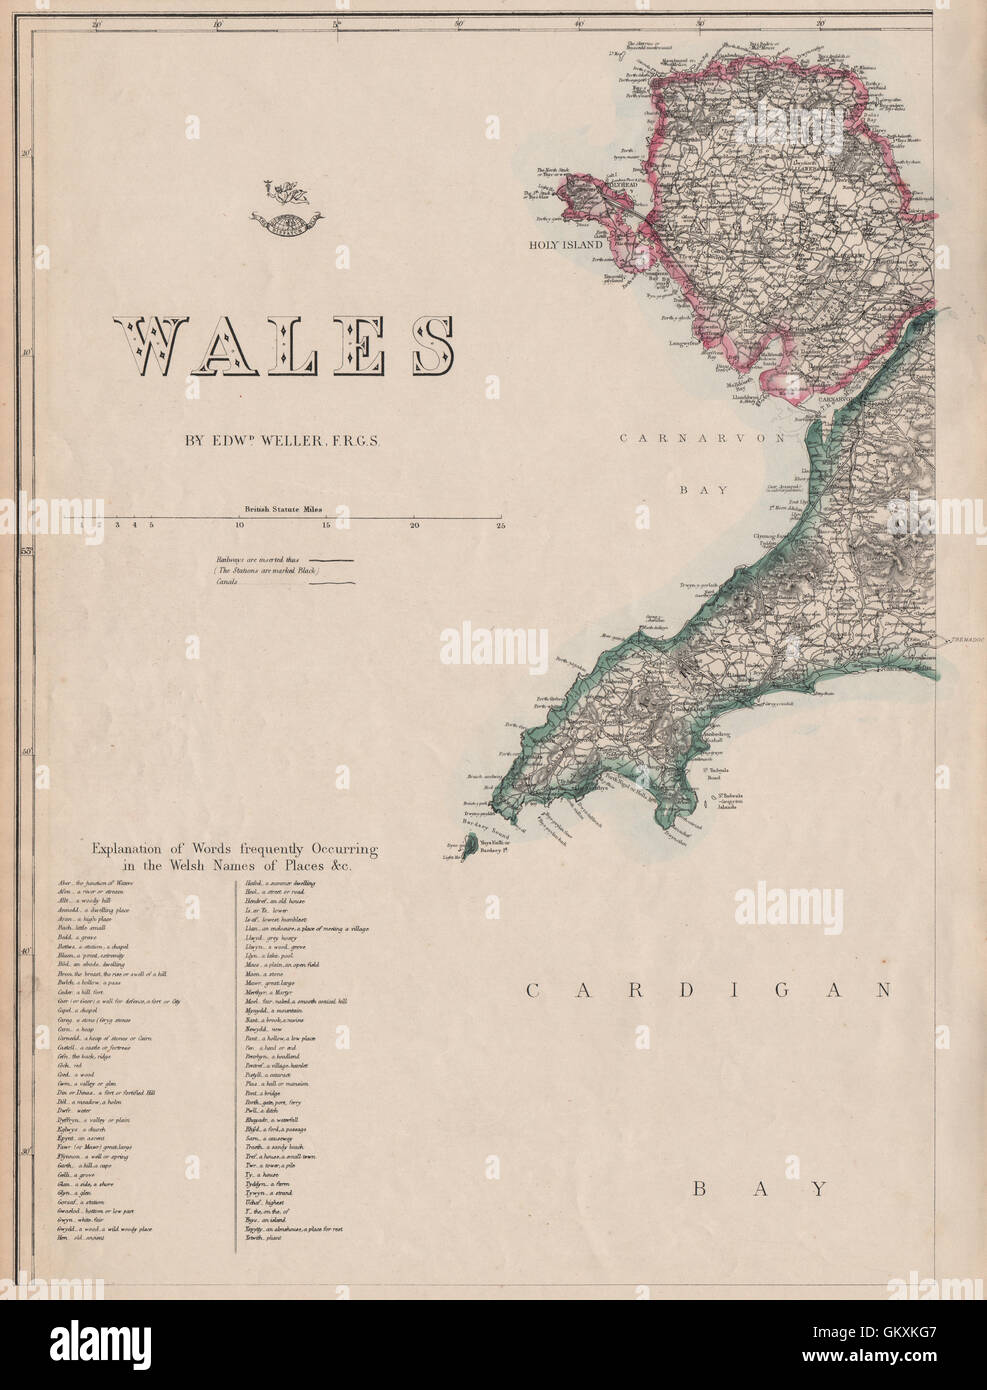 WALES NORTH WEST Anglesey Lleyn/Llyn Peninsula Welsh placenames WELLER, 1863 map - Stock Image